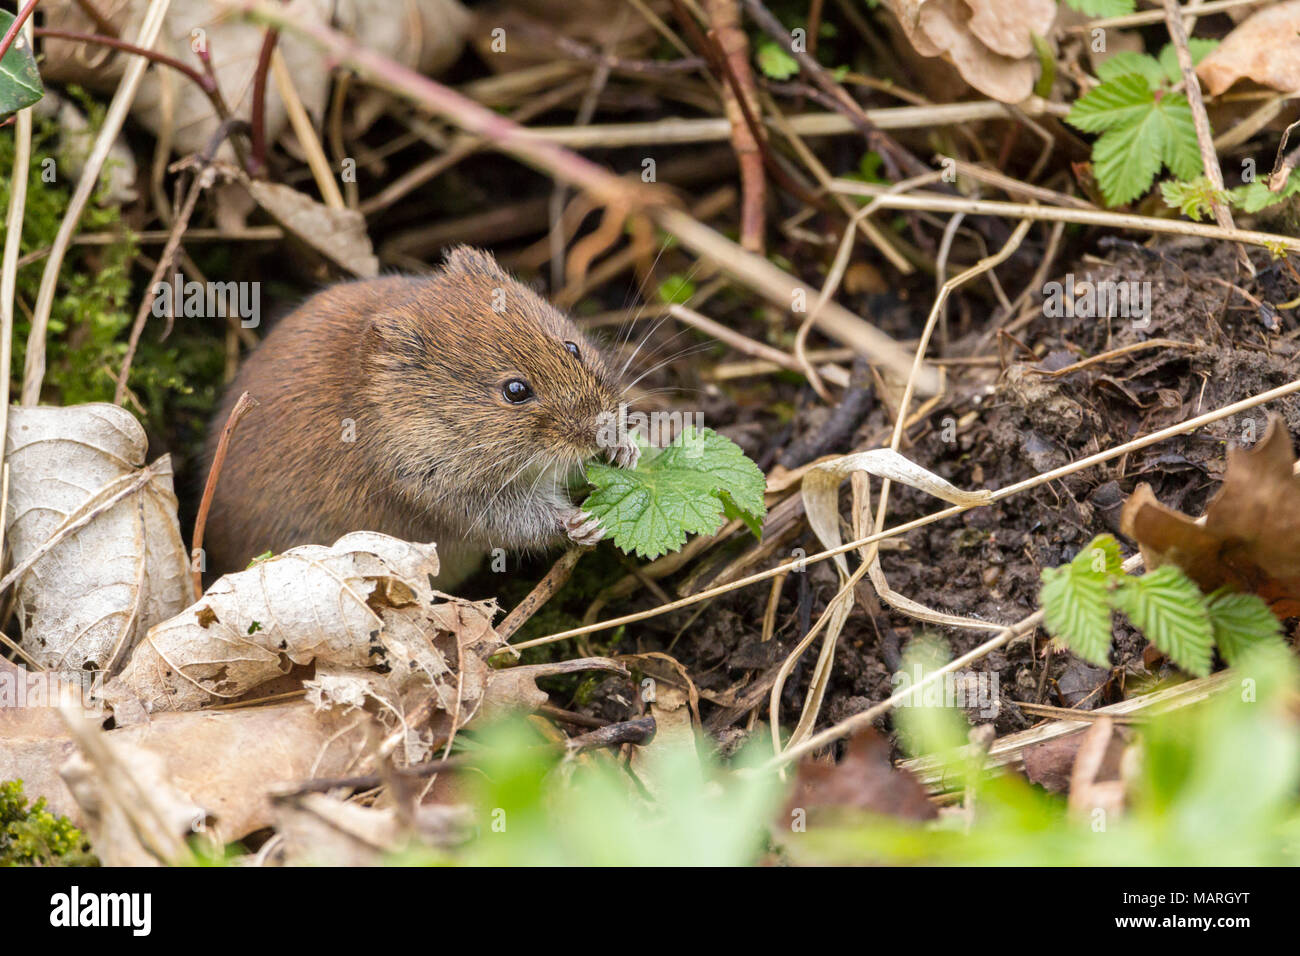 Bank vole (Clethrionomys glareolus) feeding on bankside vegetation near a bridge I took the image from at the entrance to Woods mill nature reserve. - Stock Image